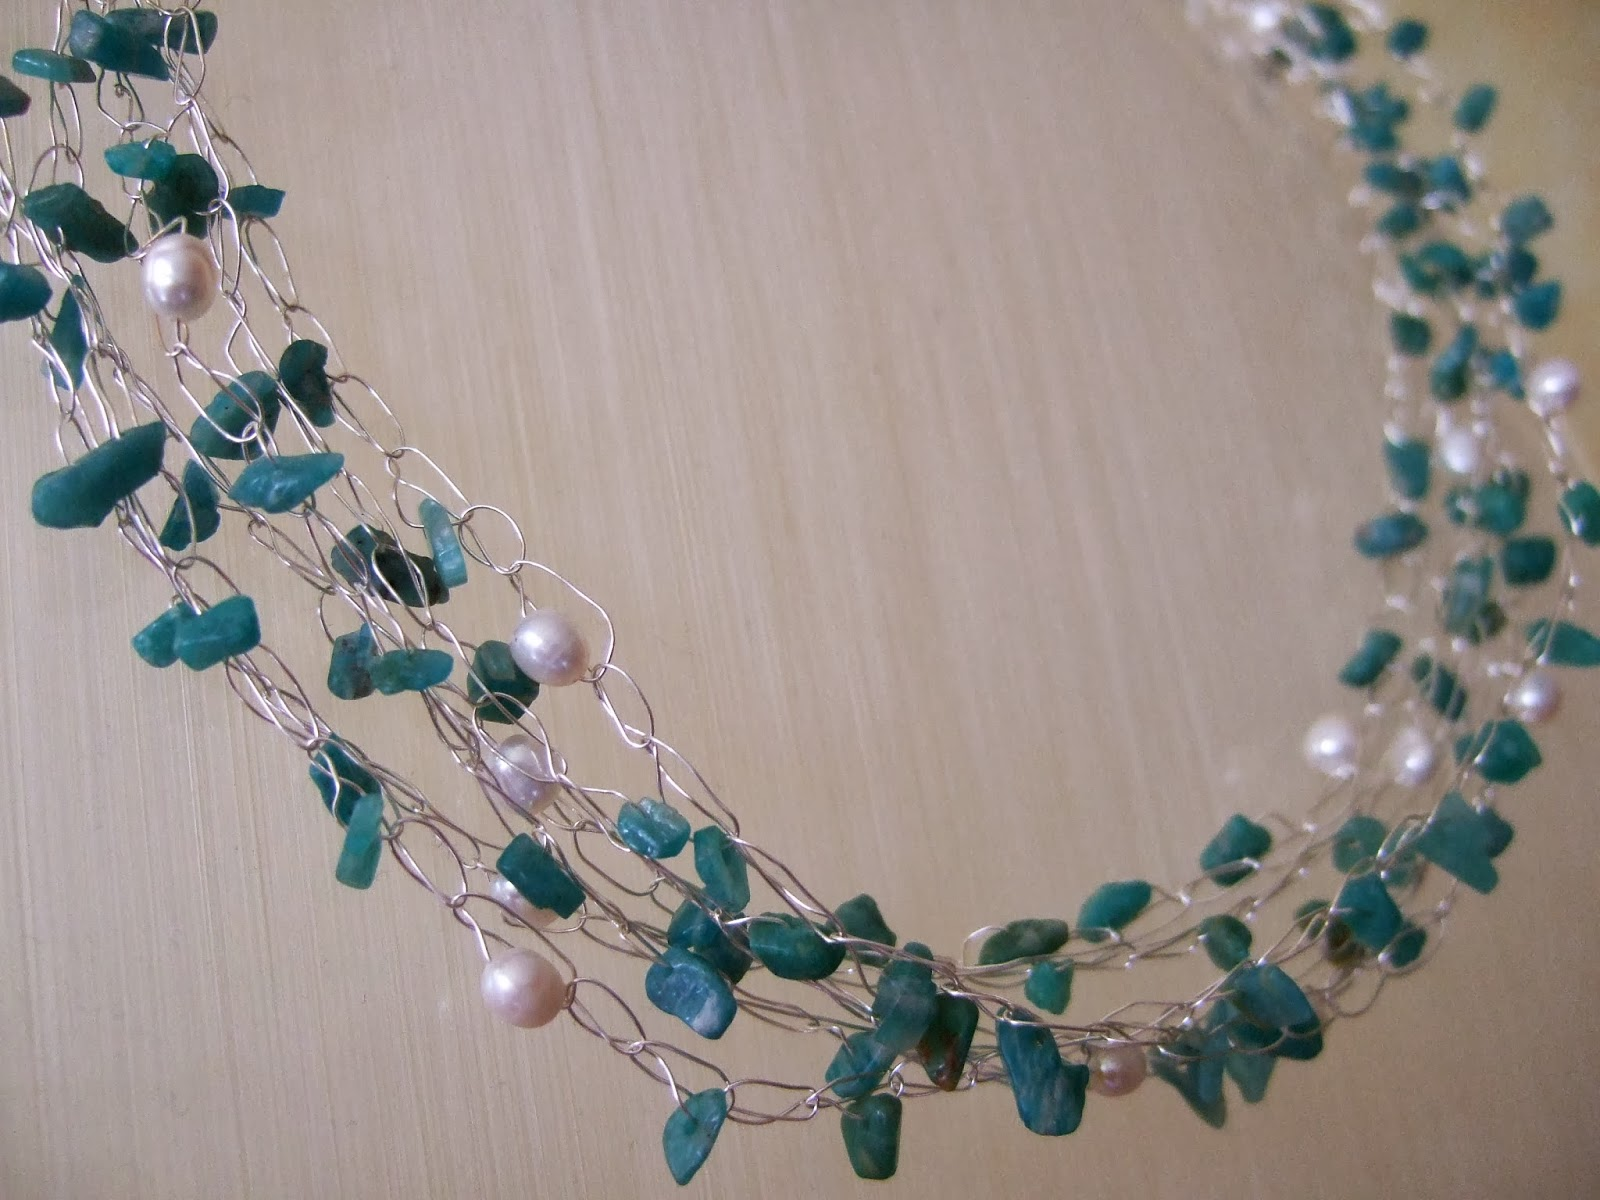 Linden Grove: Bead and Wire Crocheted Necklace Giveaway